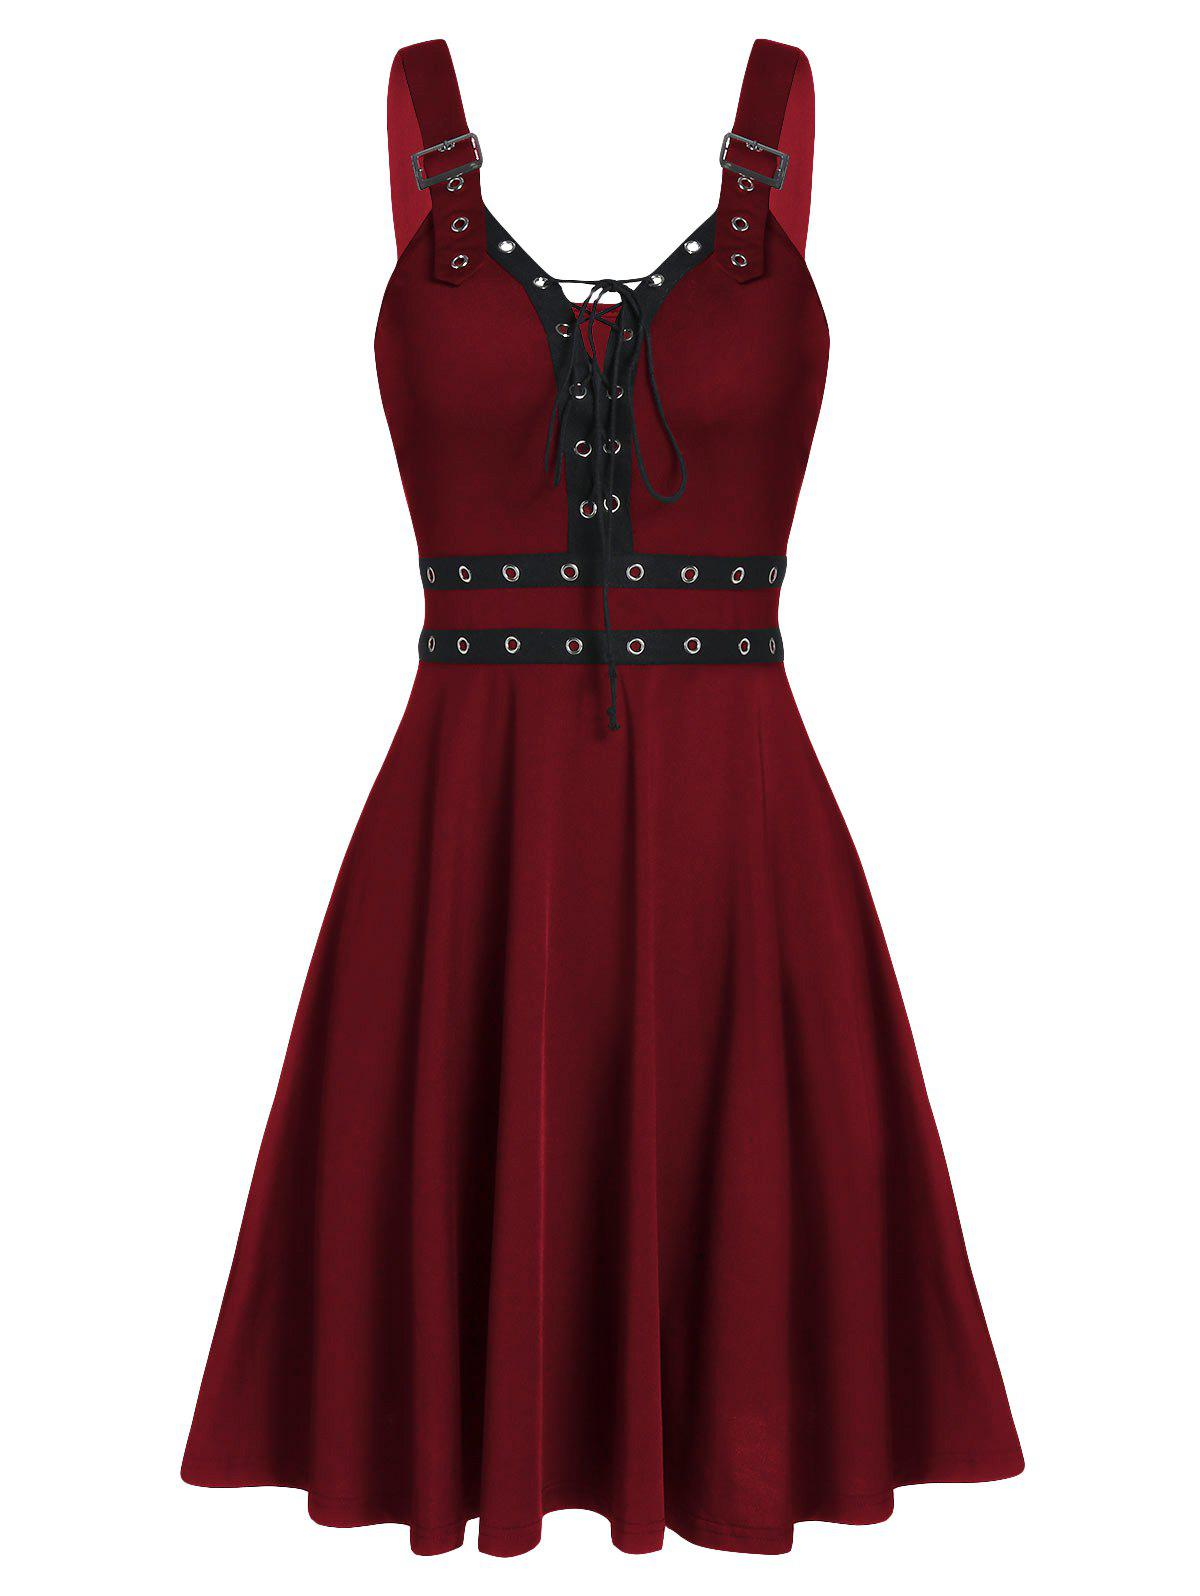 Lace Up Solid Fit And Flare Gothic Dress - RED WINE 2XL